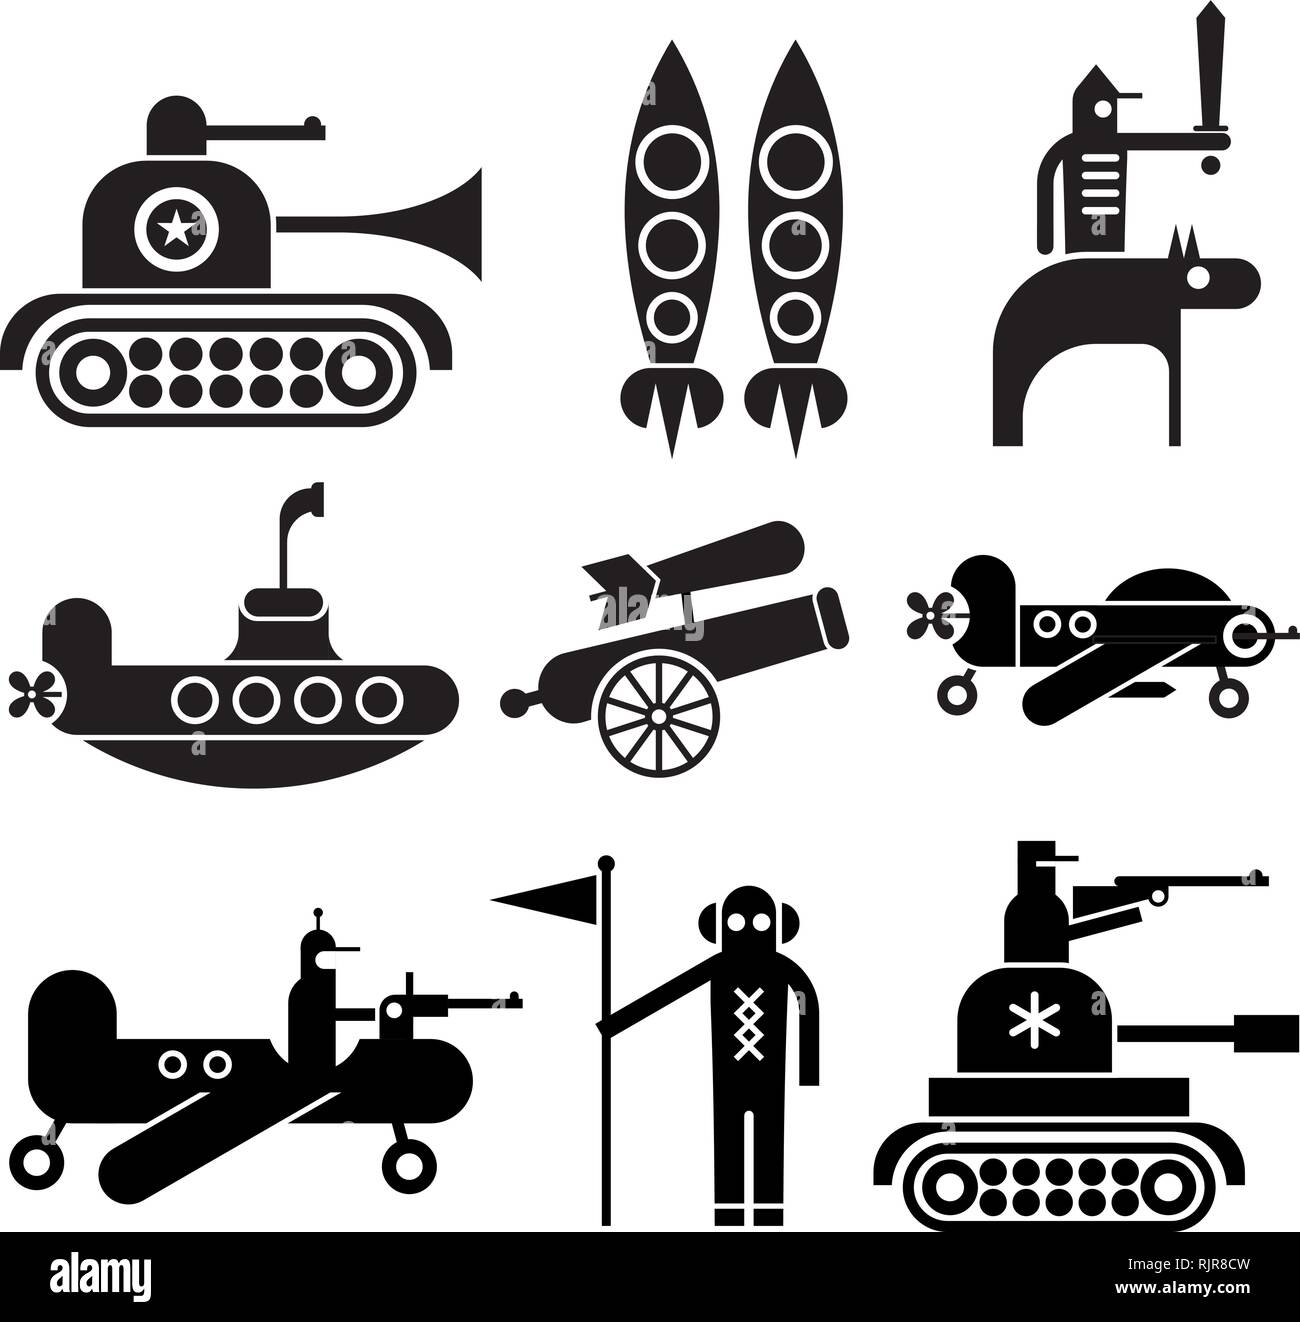 Military icons set. Isolated black vector icons on white background. - Stock Image